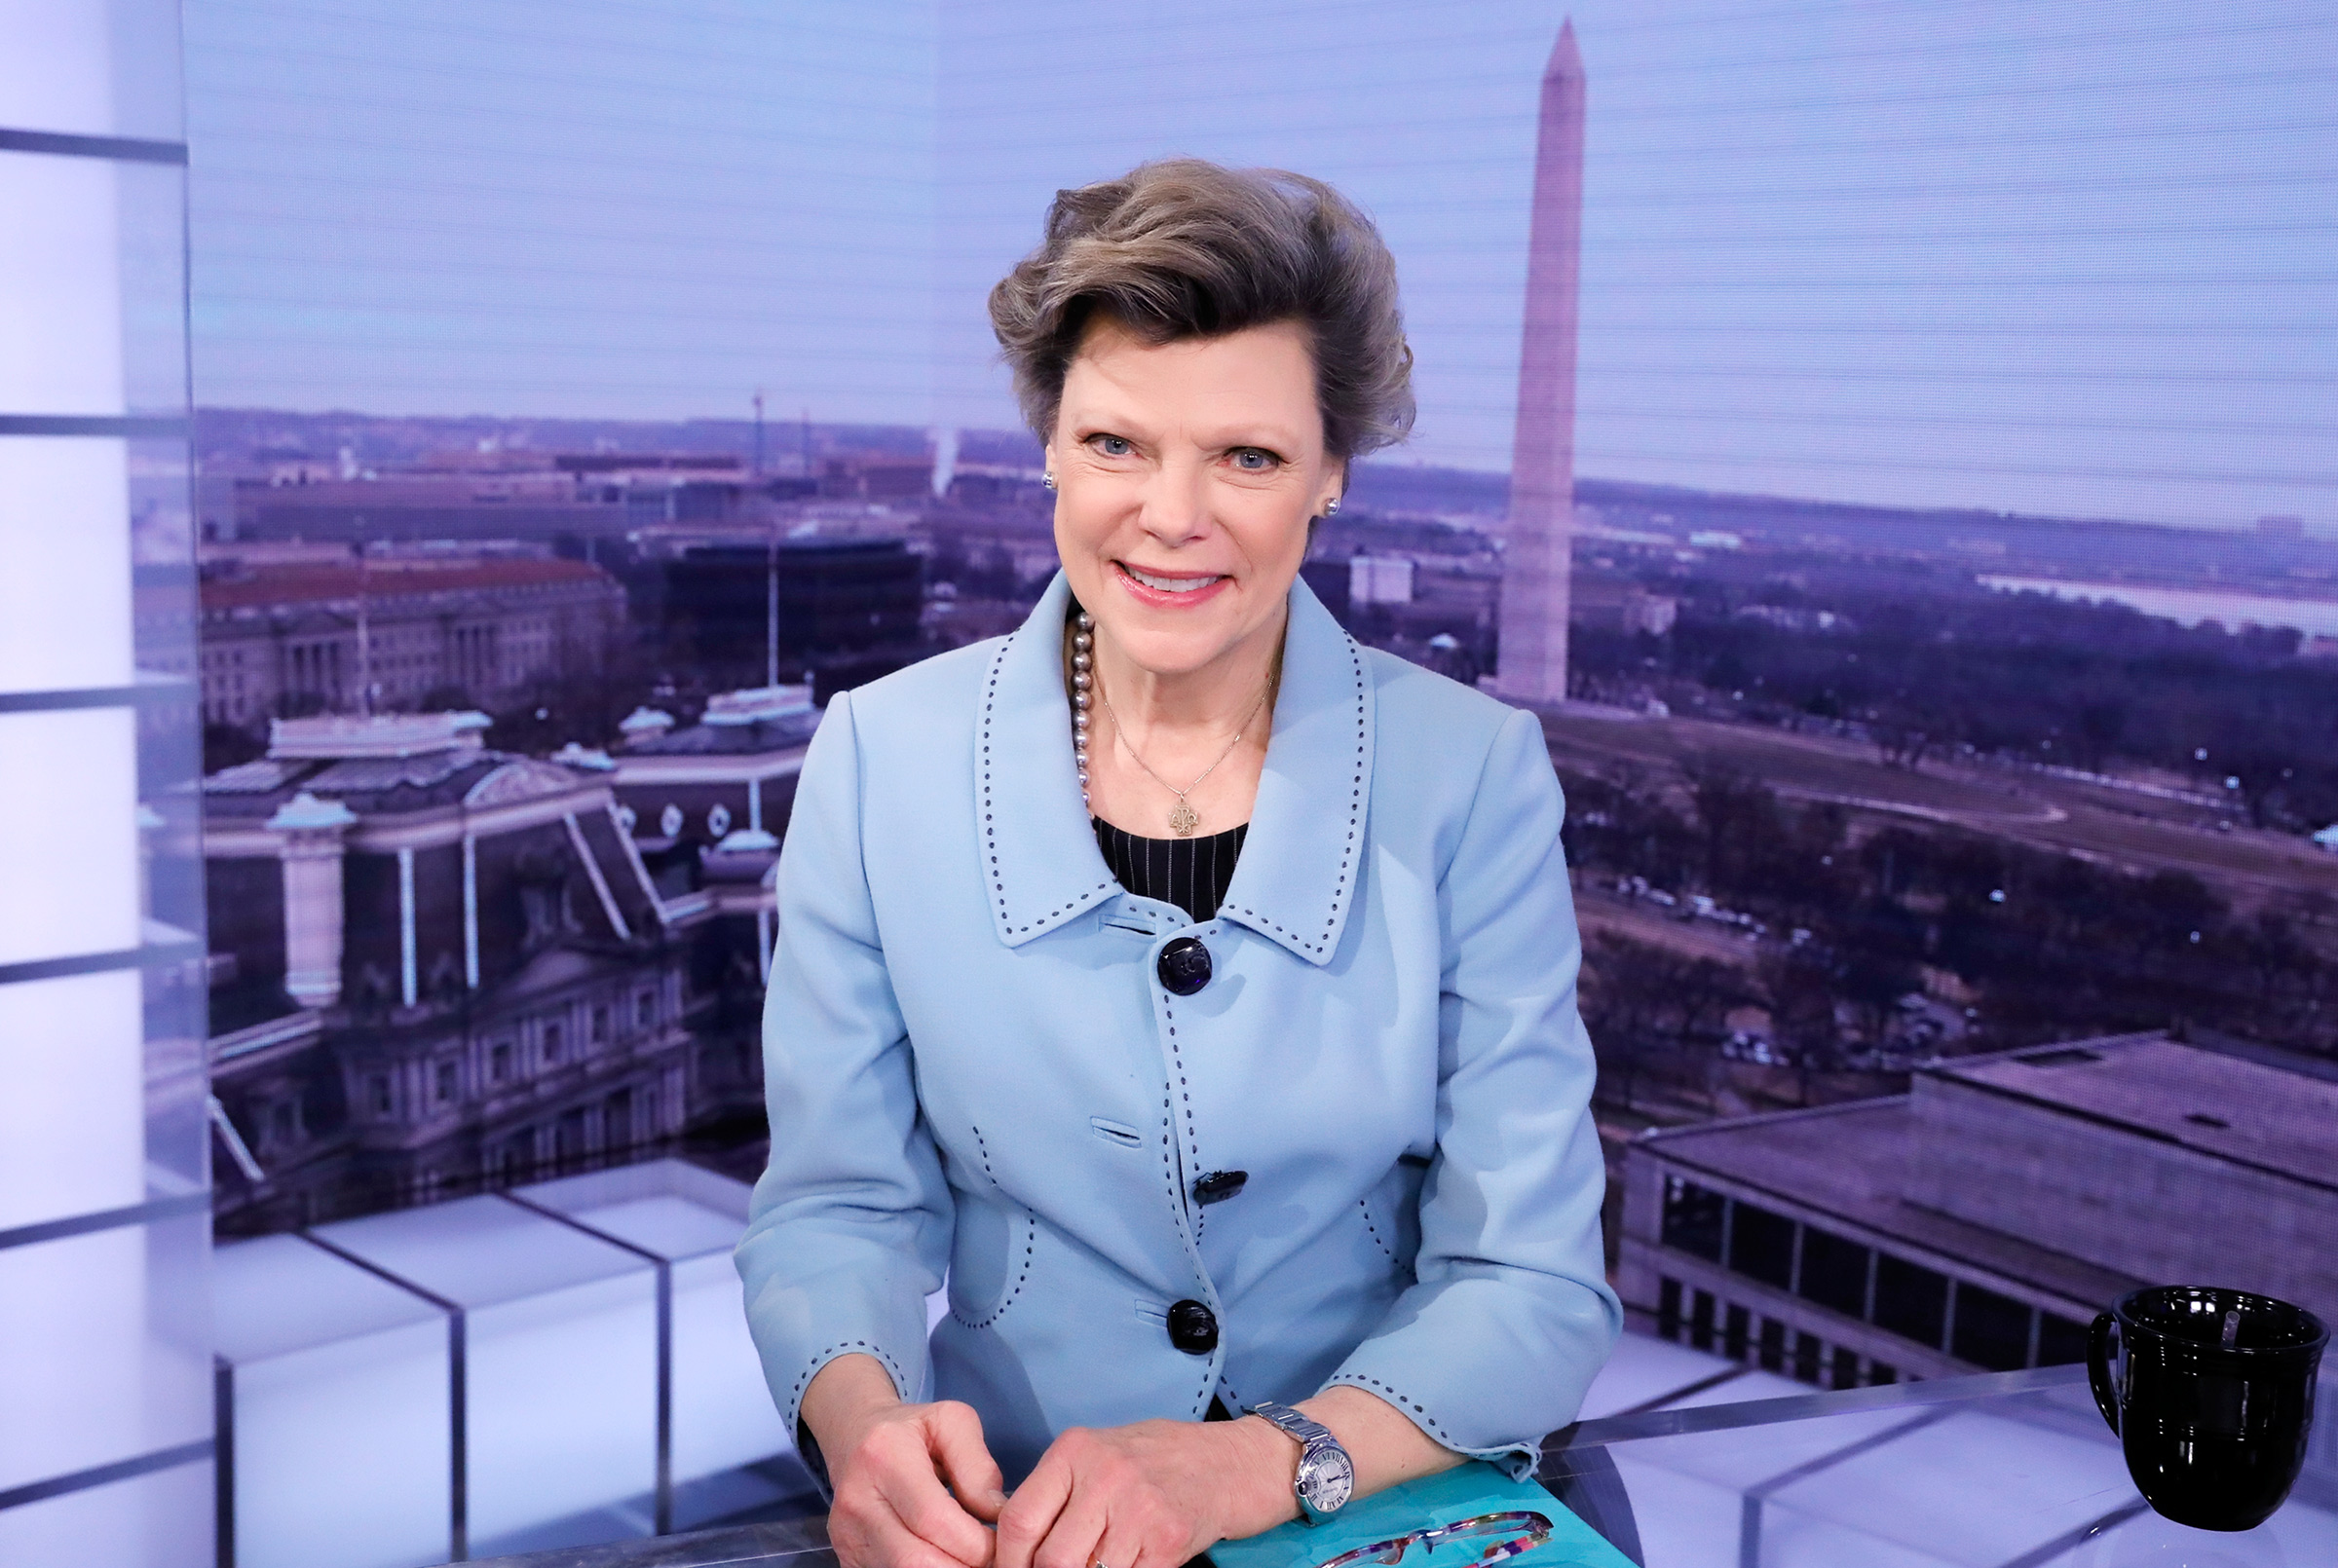 Cokie Roberts covers the inauguration of President Donald Trump, Jan. 20, 2017